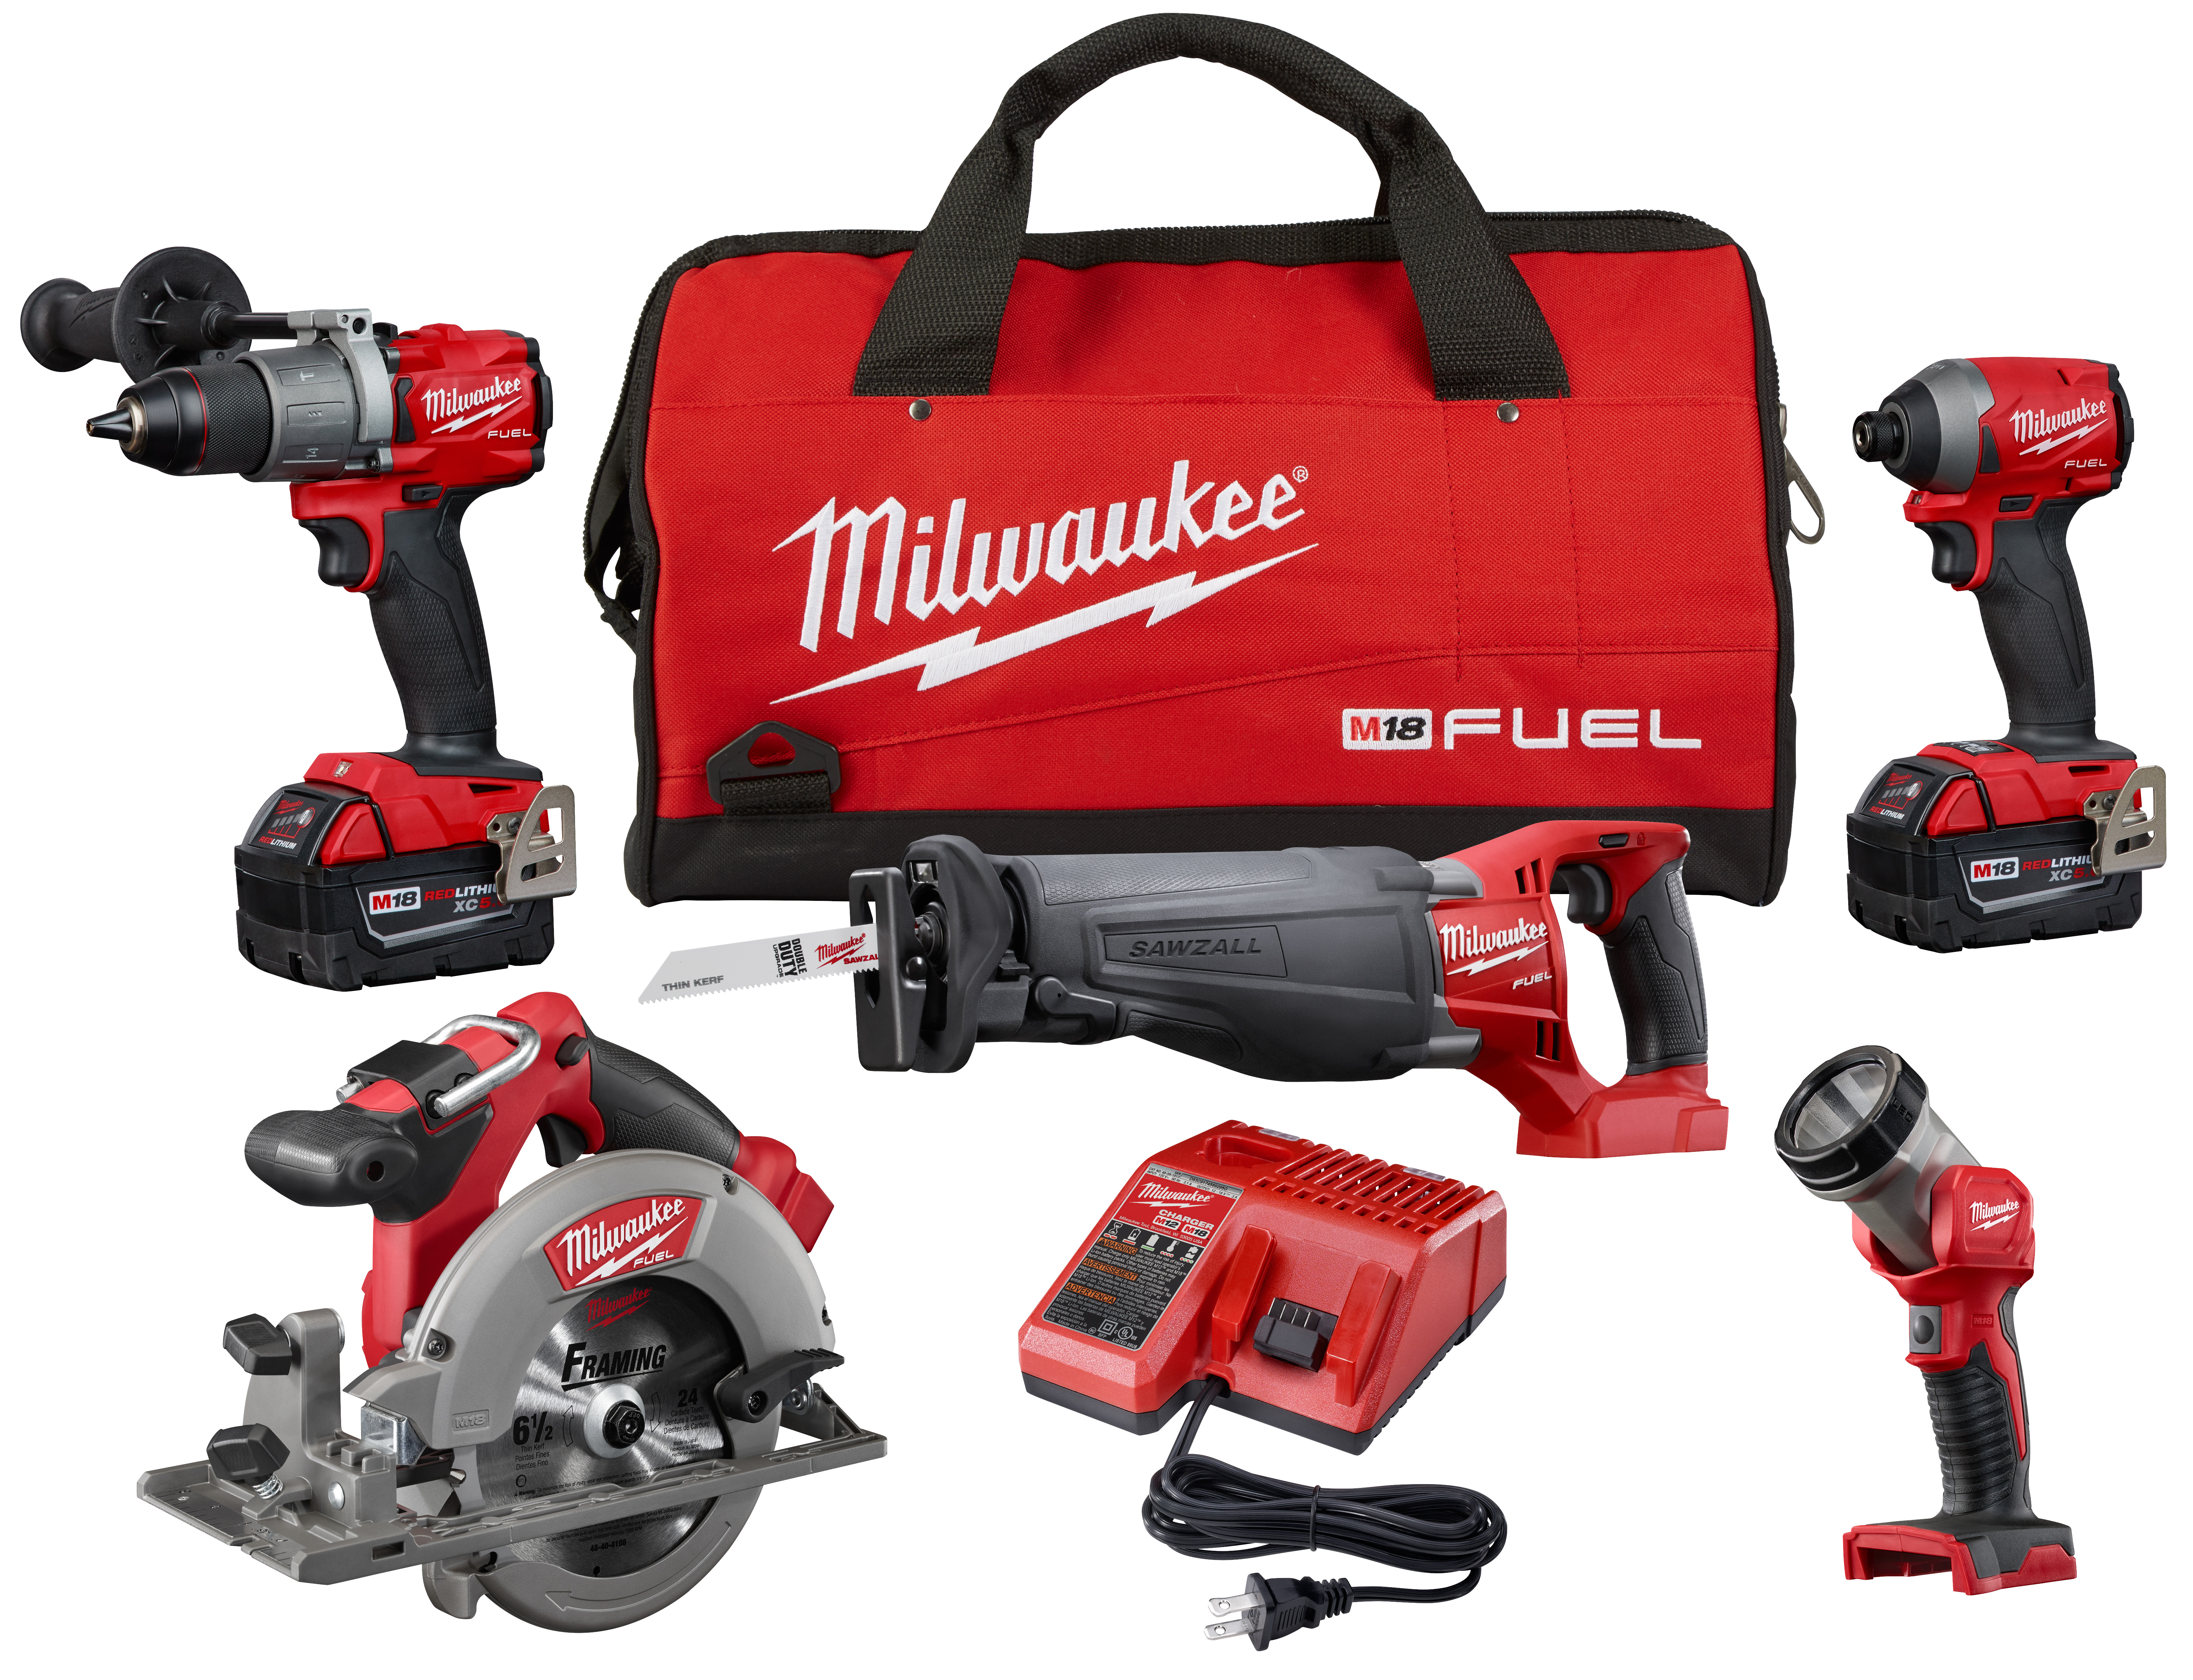 Milwaukee® M18™ 2997-25 5-Tool Cordless Combination Kit, Tools: Hammer Drill, Impact Driver, Reciprocating Saw, Circular Saw, LED Worklight, 18 VDC, 5 Ah Lithium-Ion REDLITHIUM™ Battery, 1/4 in Tip